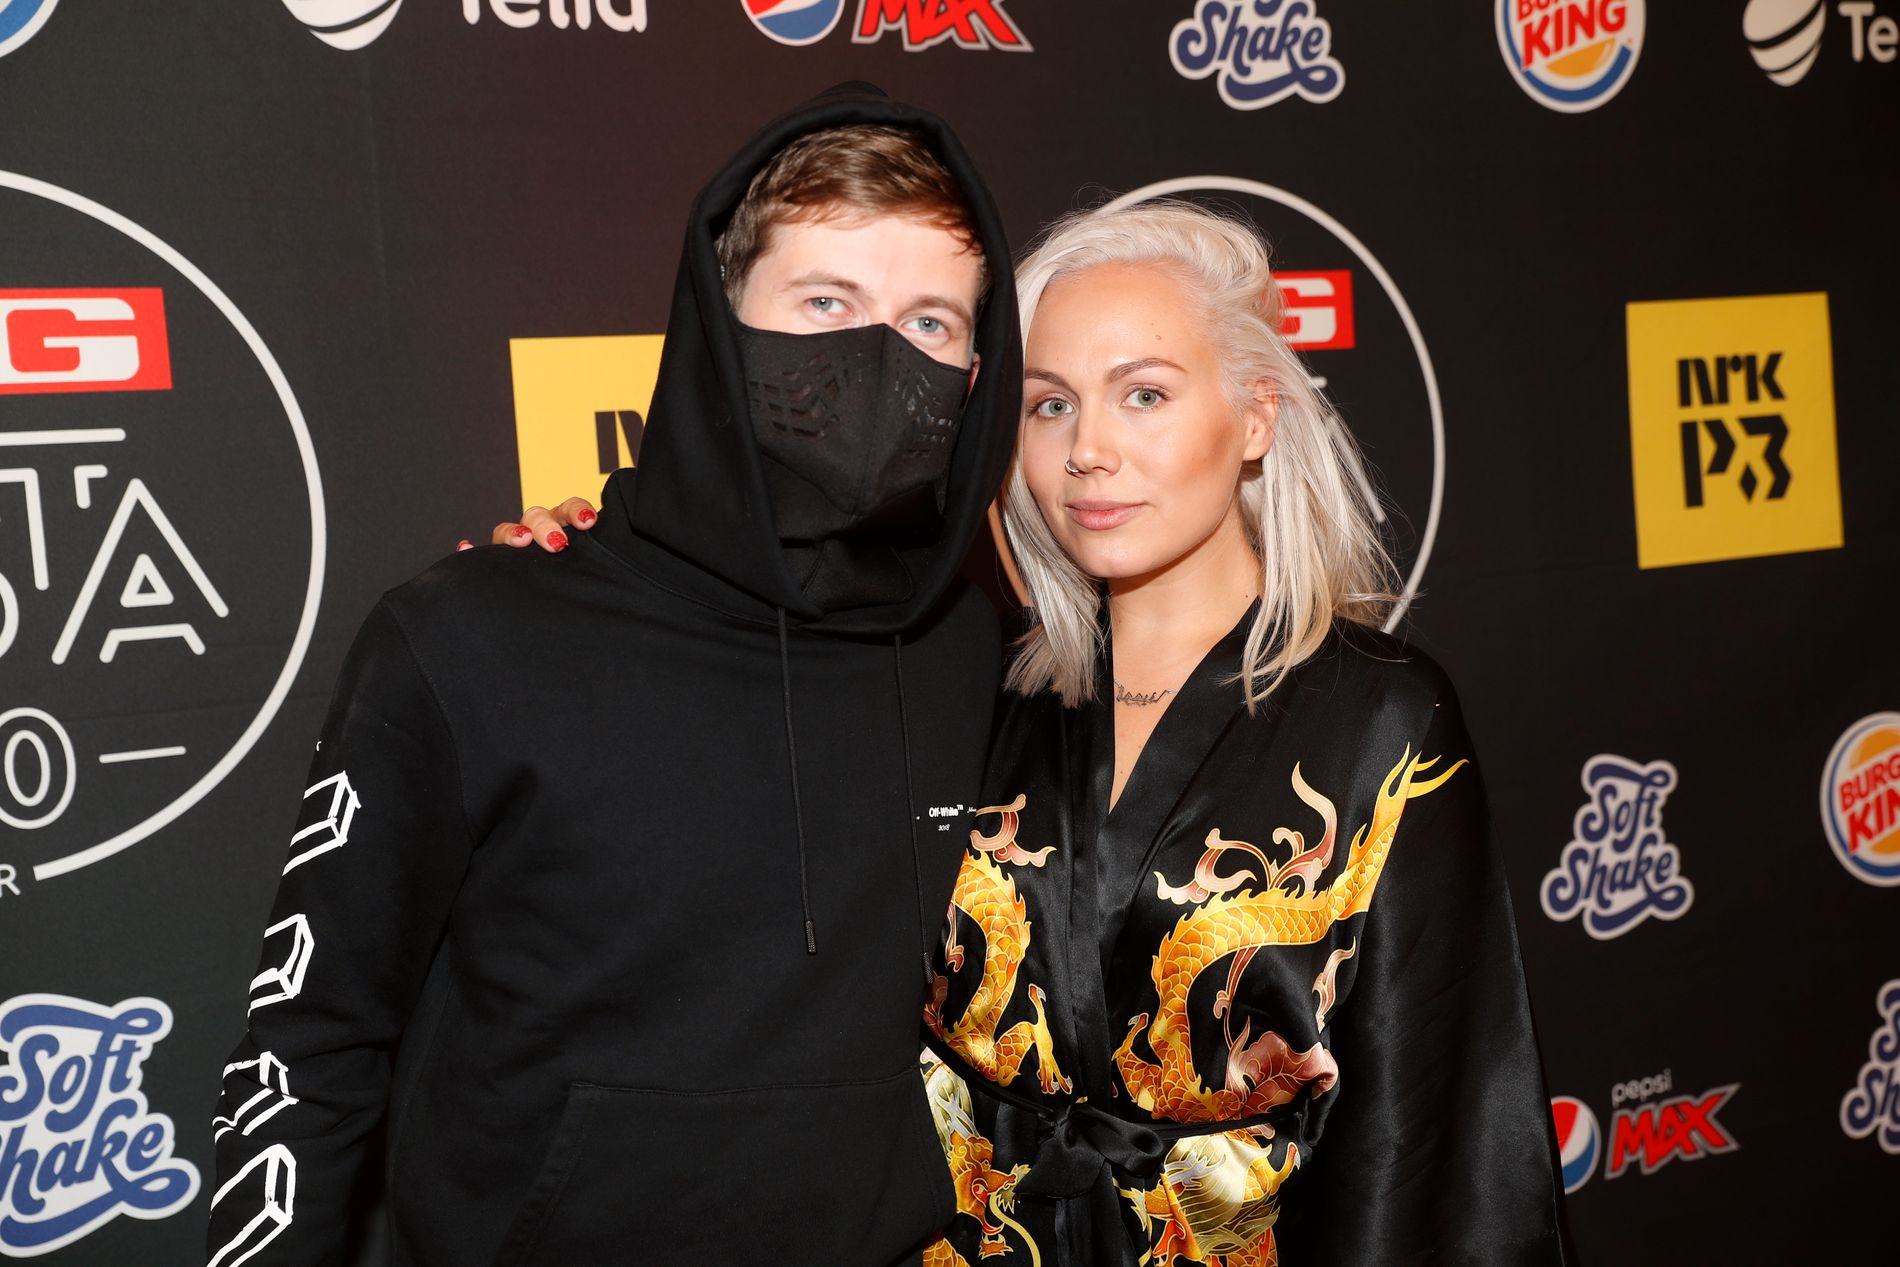 movies about dating imdb